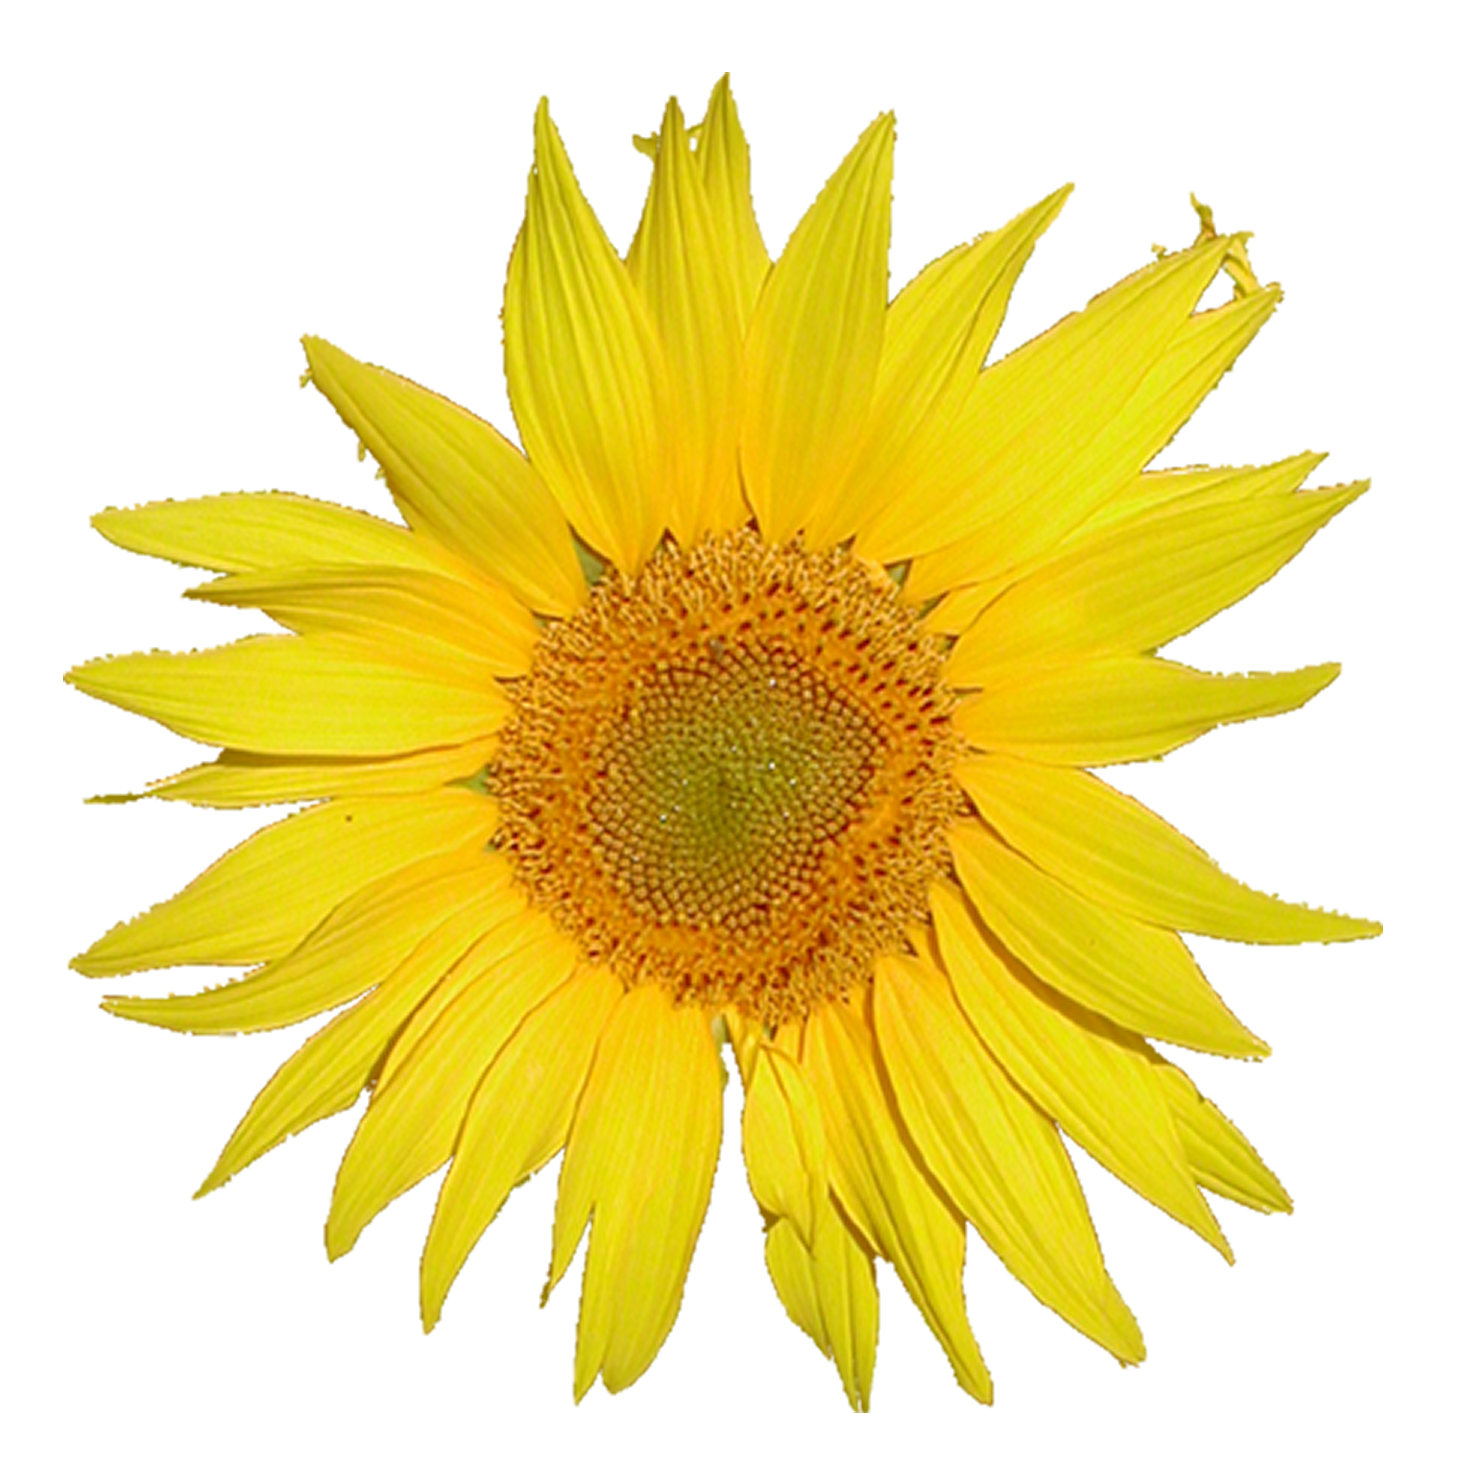 Sunflower Png Images Transparent Background: File:Mediawiki Logo, 3x From Tournesol Sunflower.png